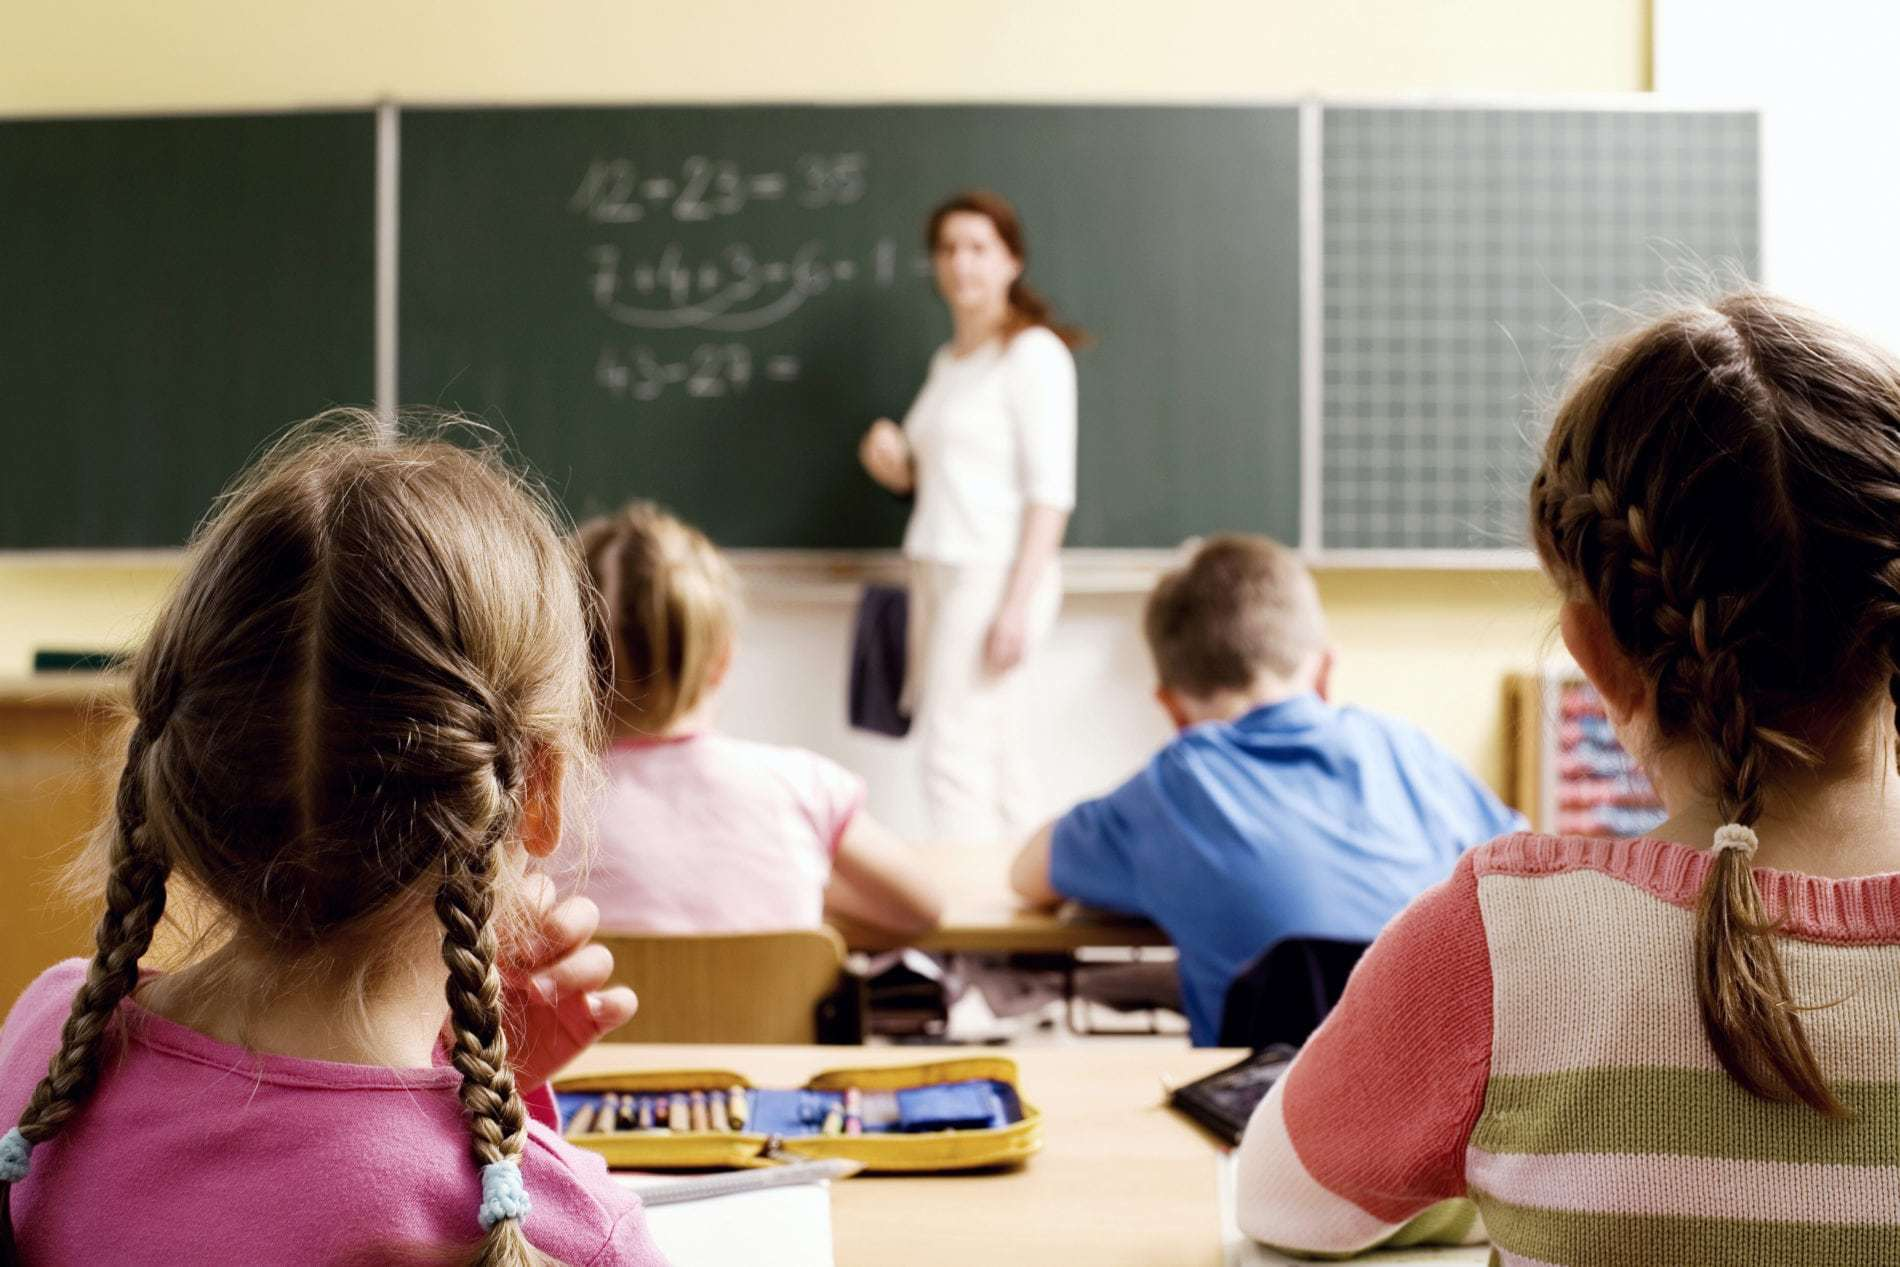 Top 3 Security Risks in Education